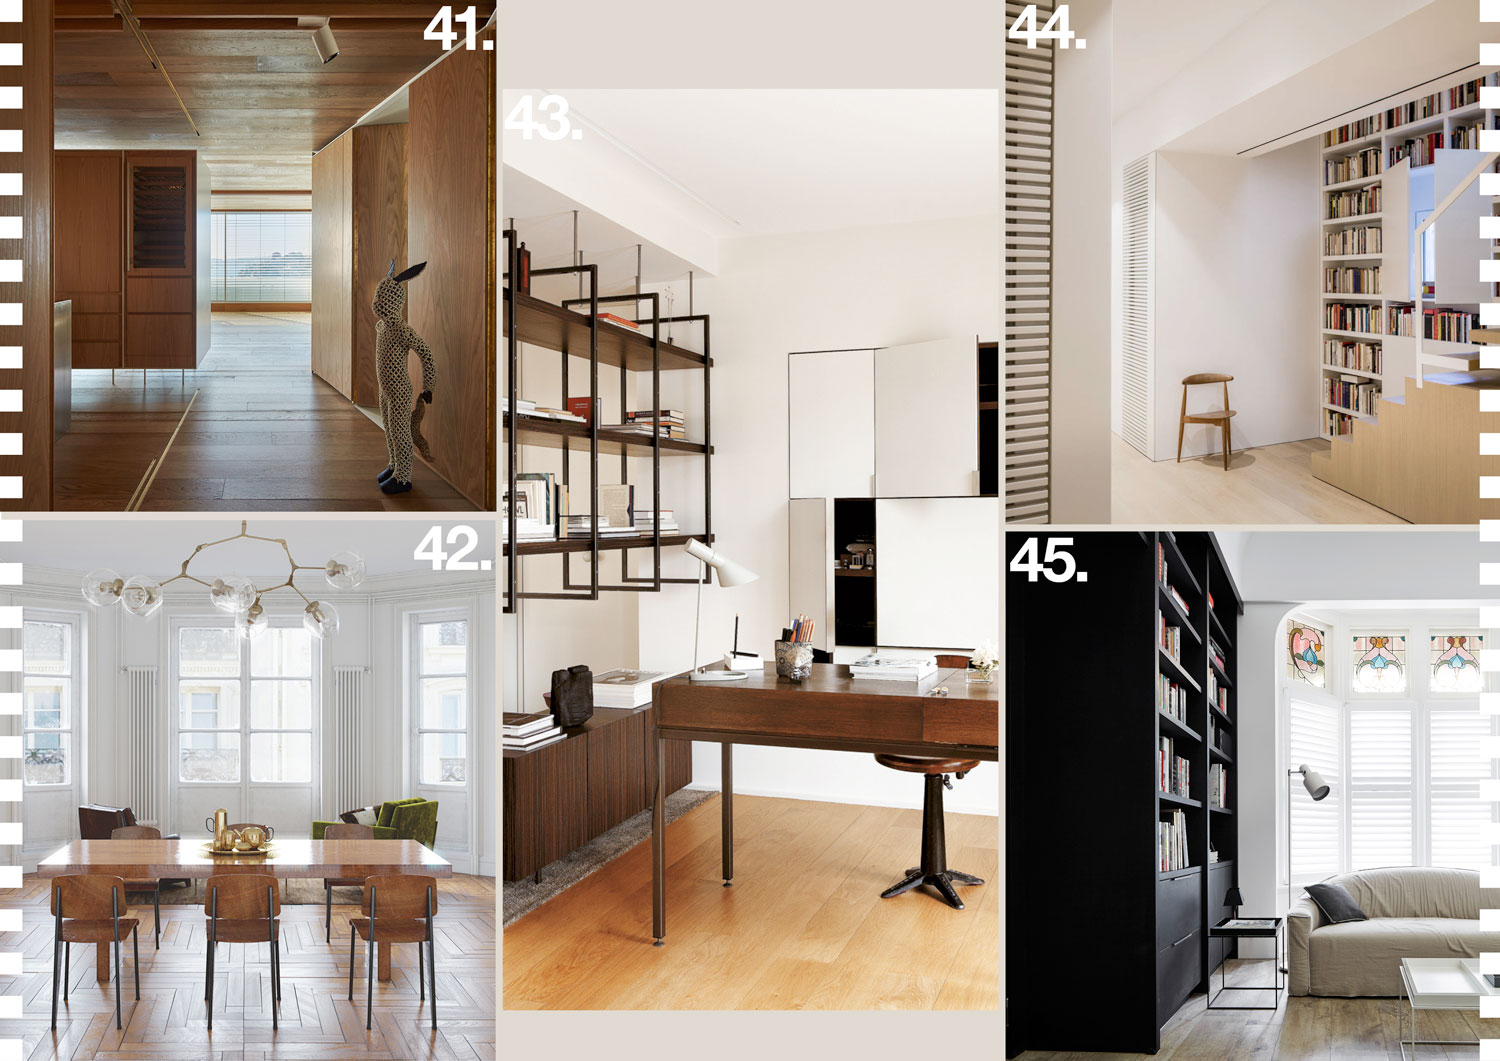 Residential Interior Design 2016 Archive | Yellowtrace